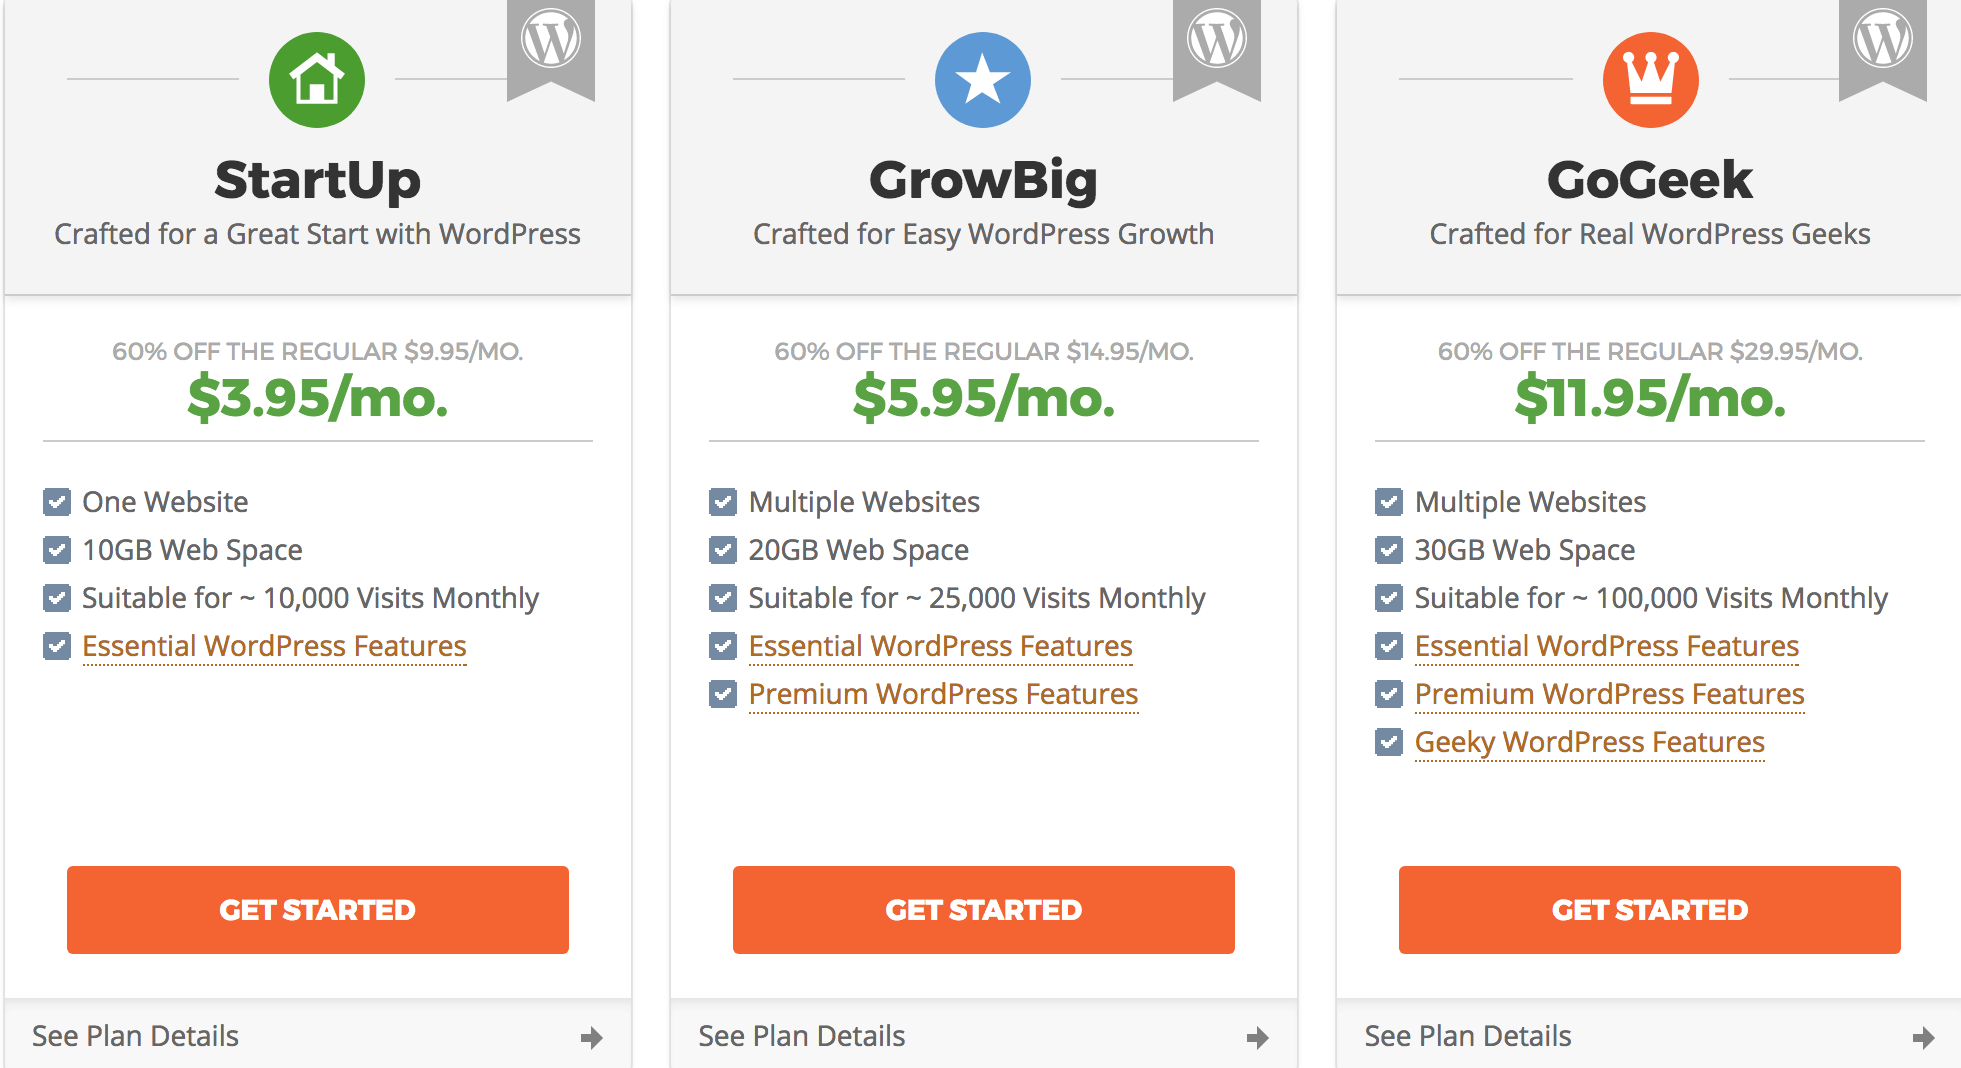 Free blogging course How-To-Start-A-Blog-How-To-Set-Up-WordPress-With-Siteground startbloggingpros.com